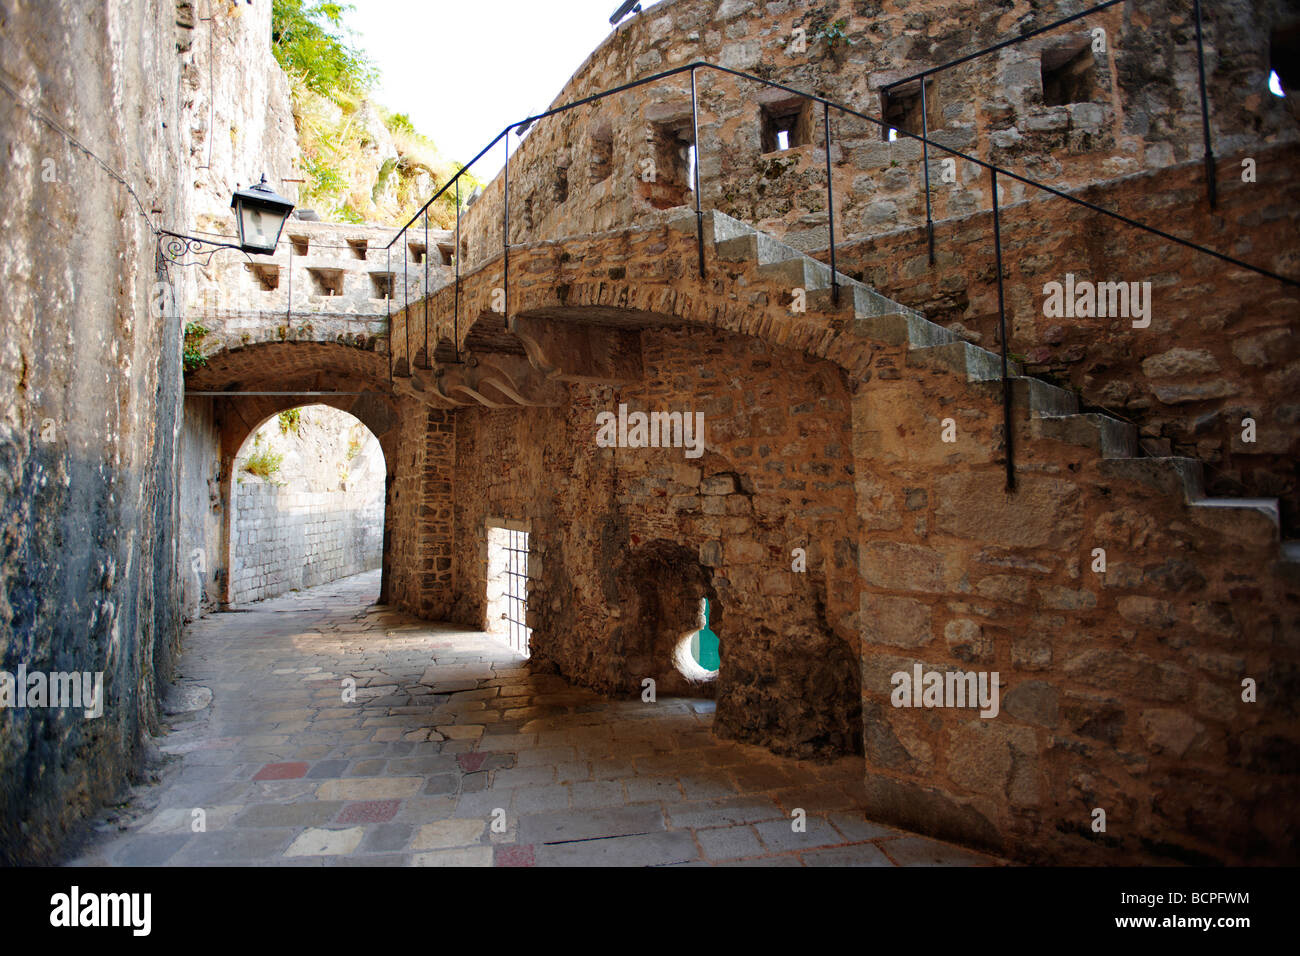 Old medieval town walls and gate - Kotor - Montenegro Stock Photo